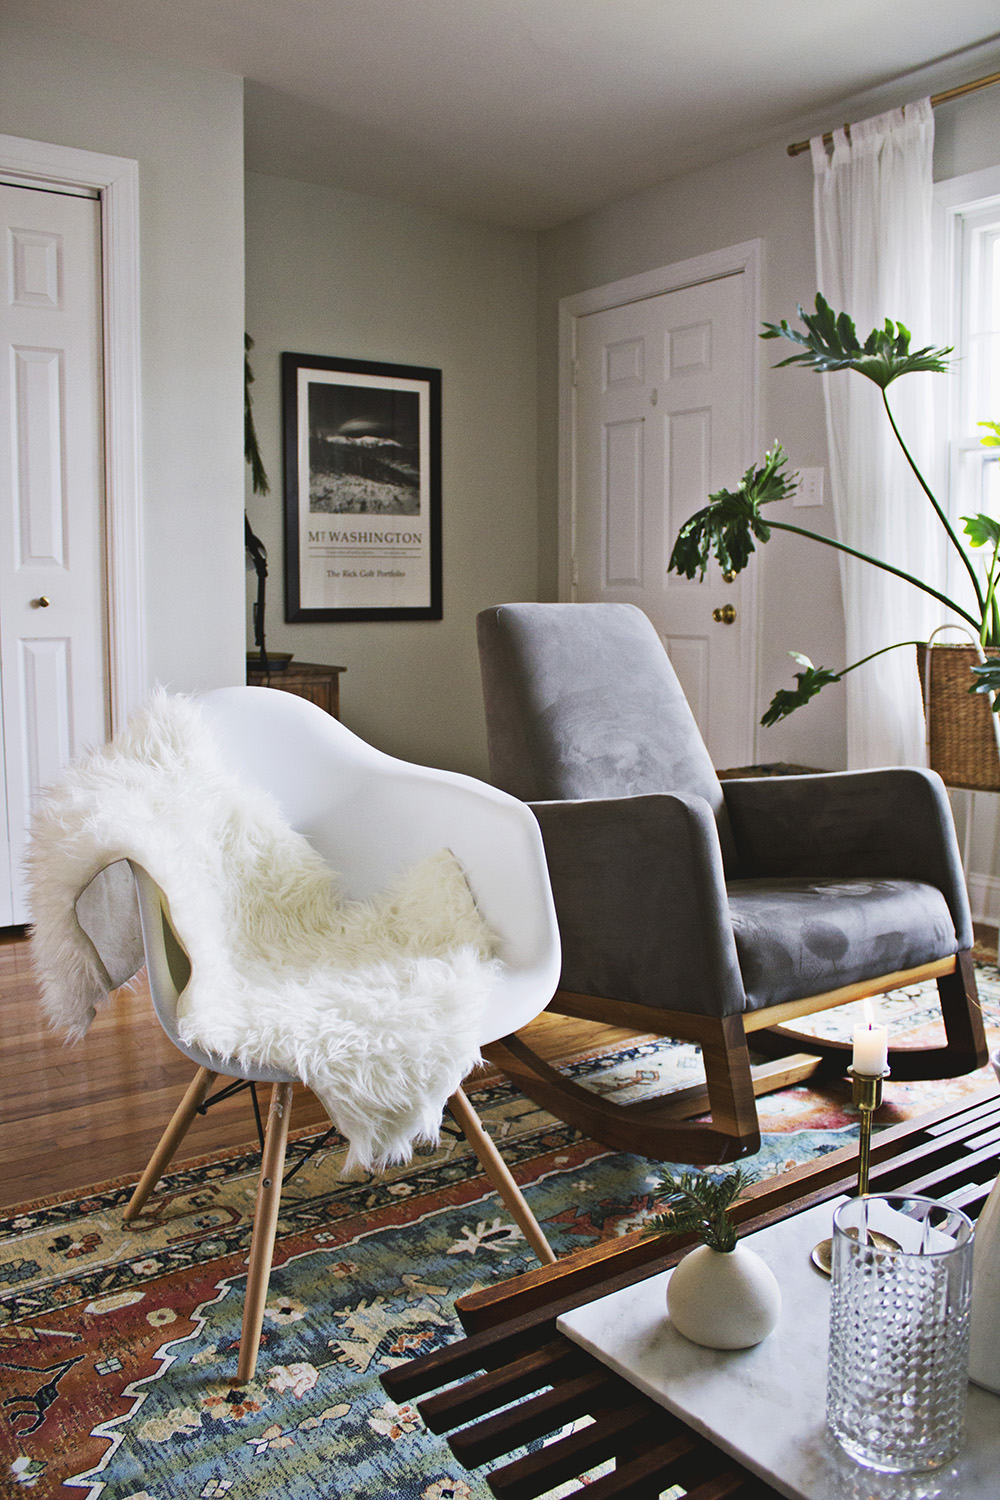 Holiday Home Tour: Mid-Century Modern Christmas Decor